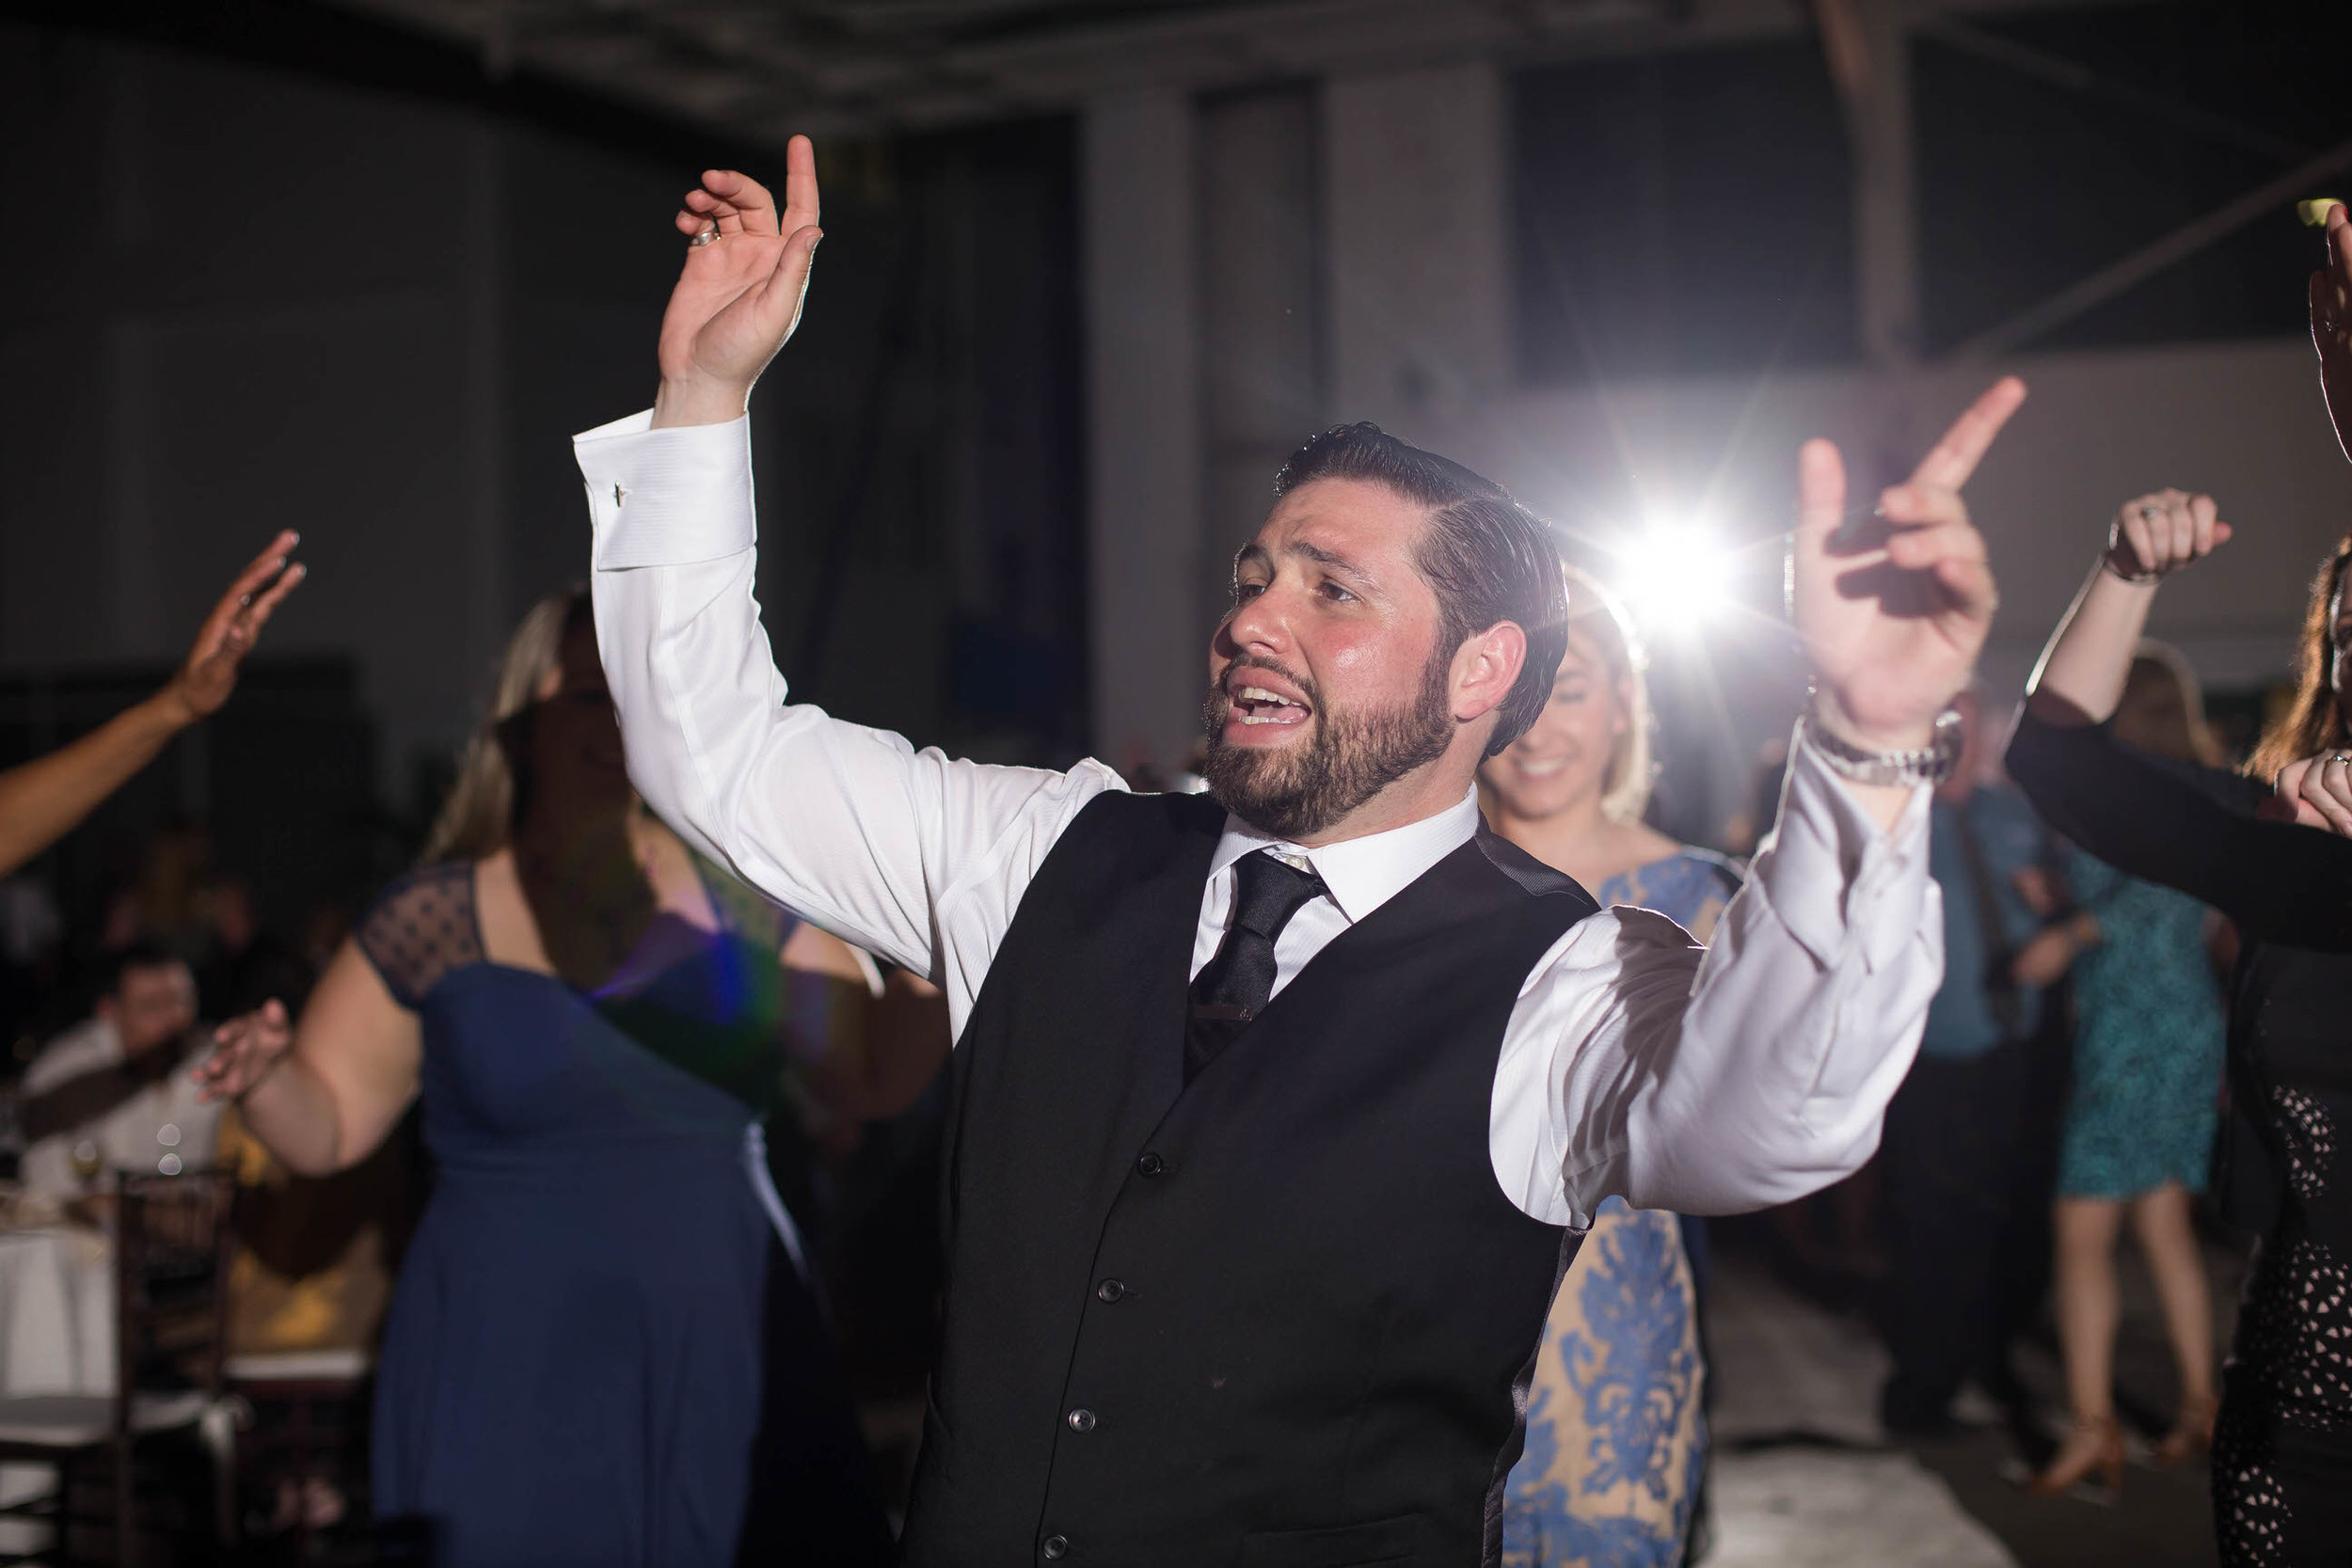 groom_dancing_moments_tiny_house_photo_weddings.jpg